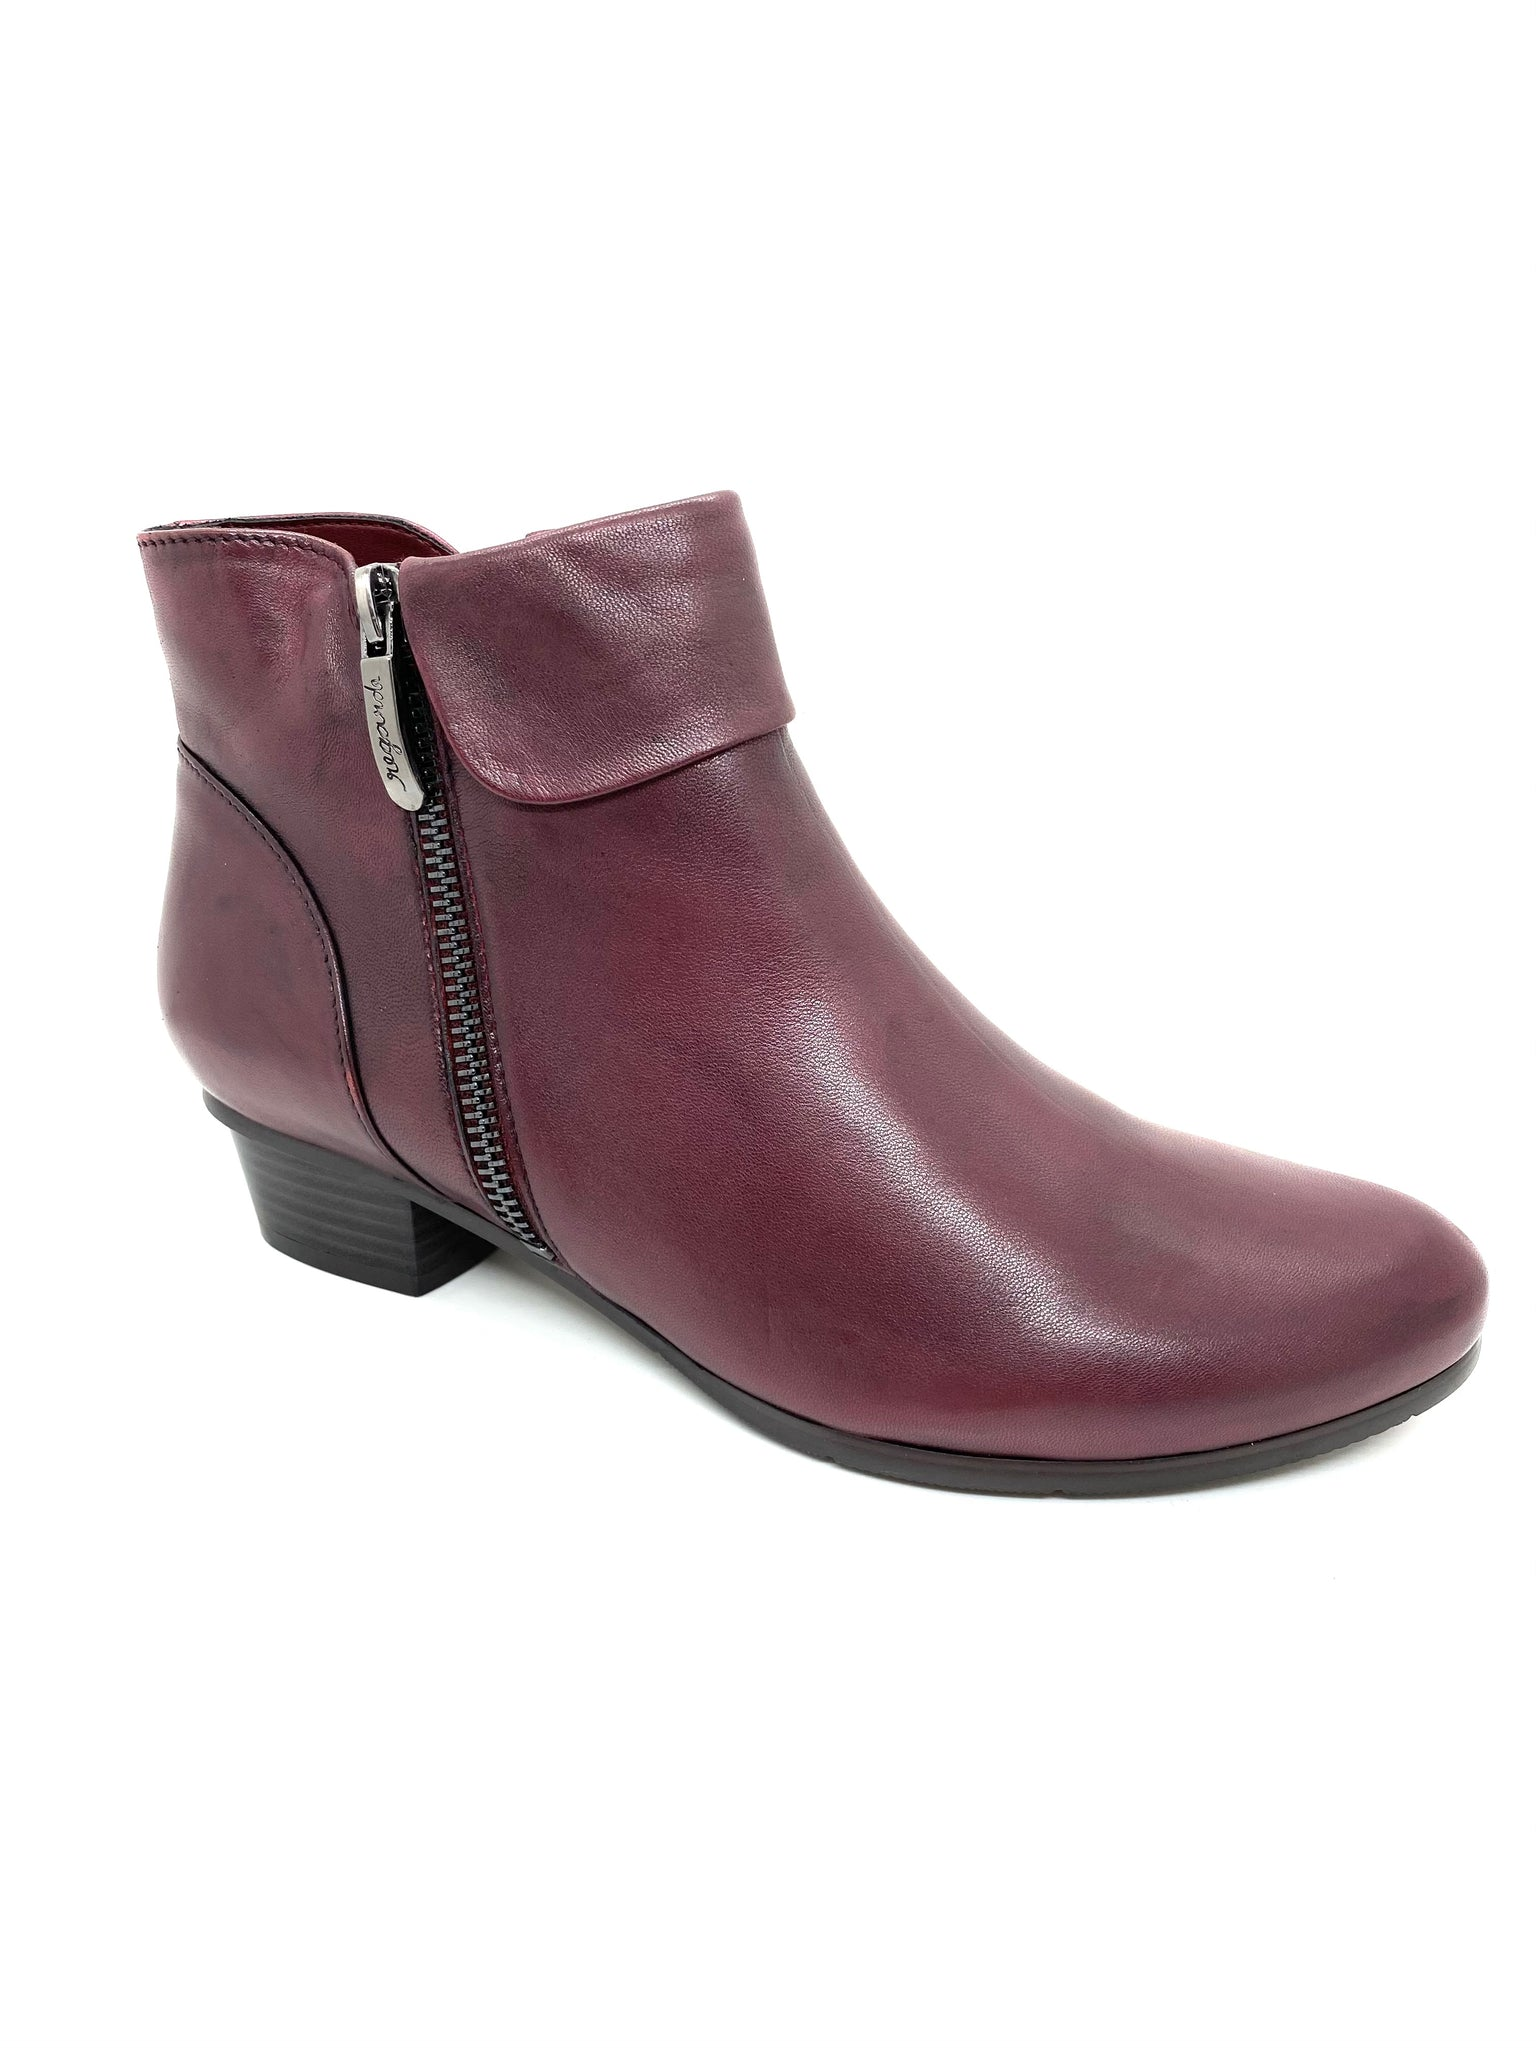 Regarde Le Ciel Stefany Ladies Ankle Boot Bordo